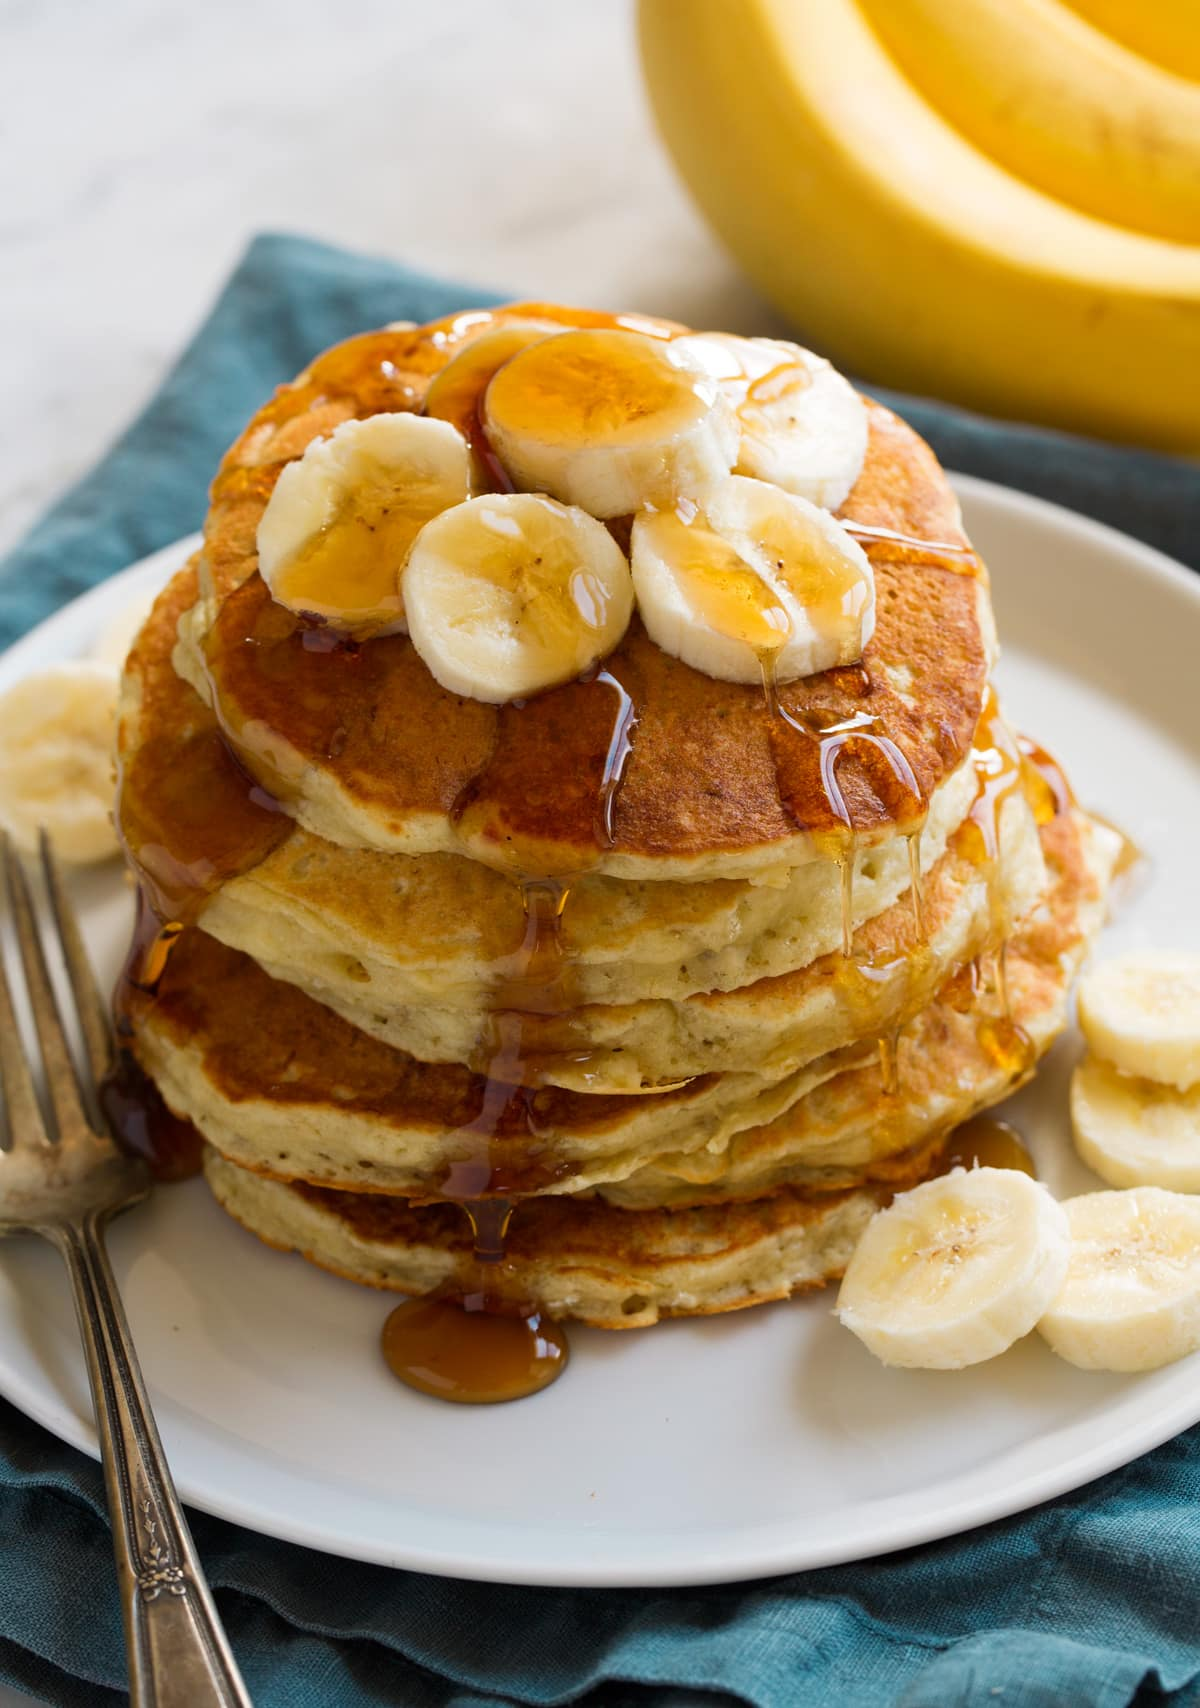 Stack of homemade banana pancakes on a plate. Pancakes are topped with banana slices and maple syrup.